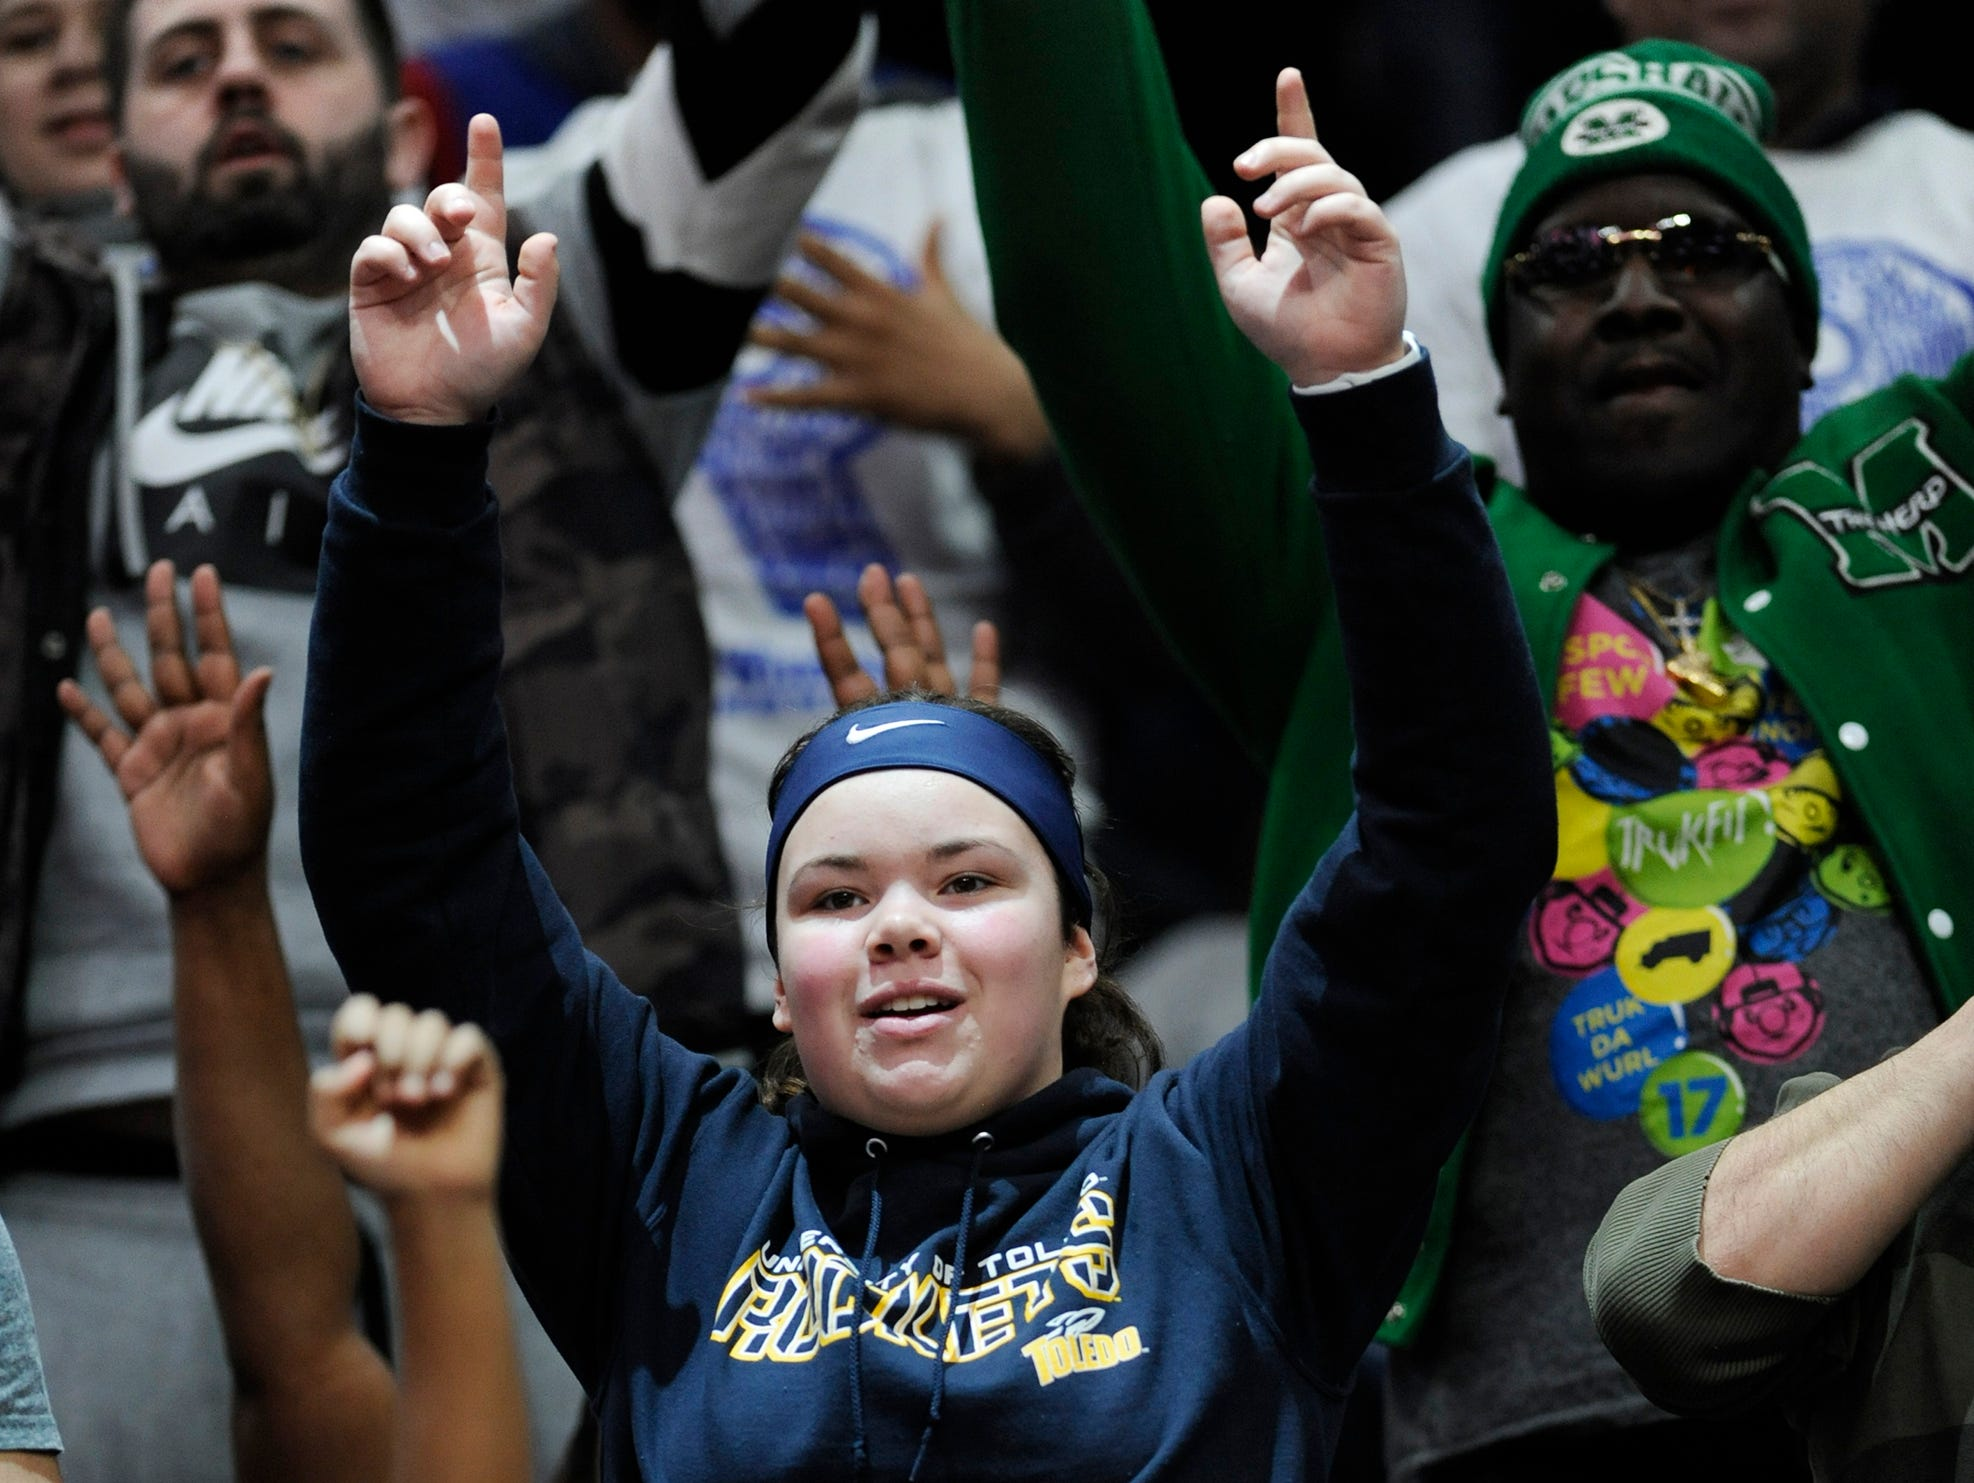 Pistons fans cheer on their team in the fourth quarter.